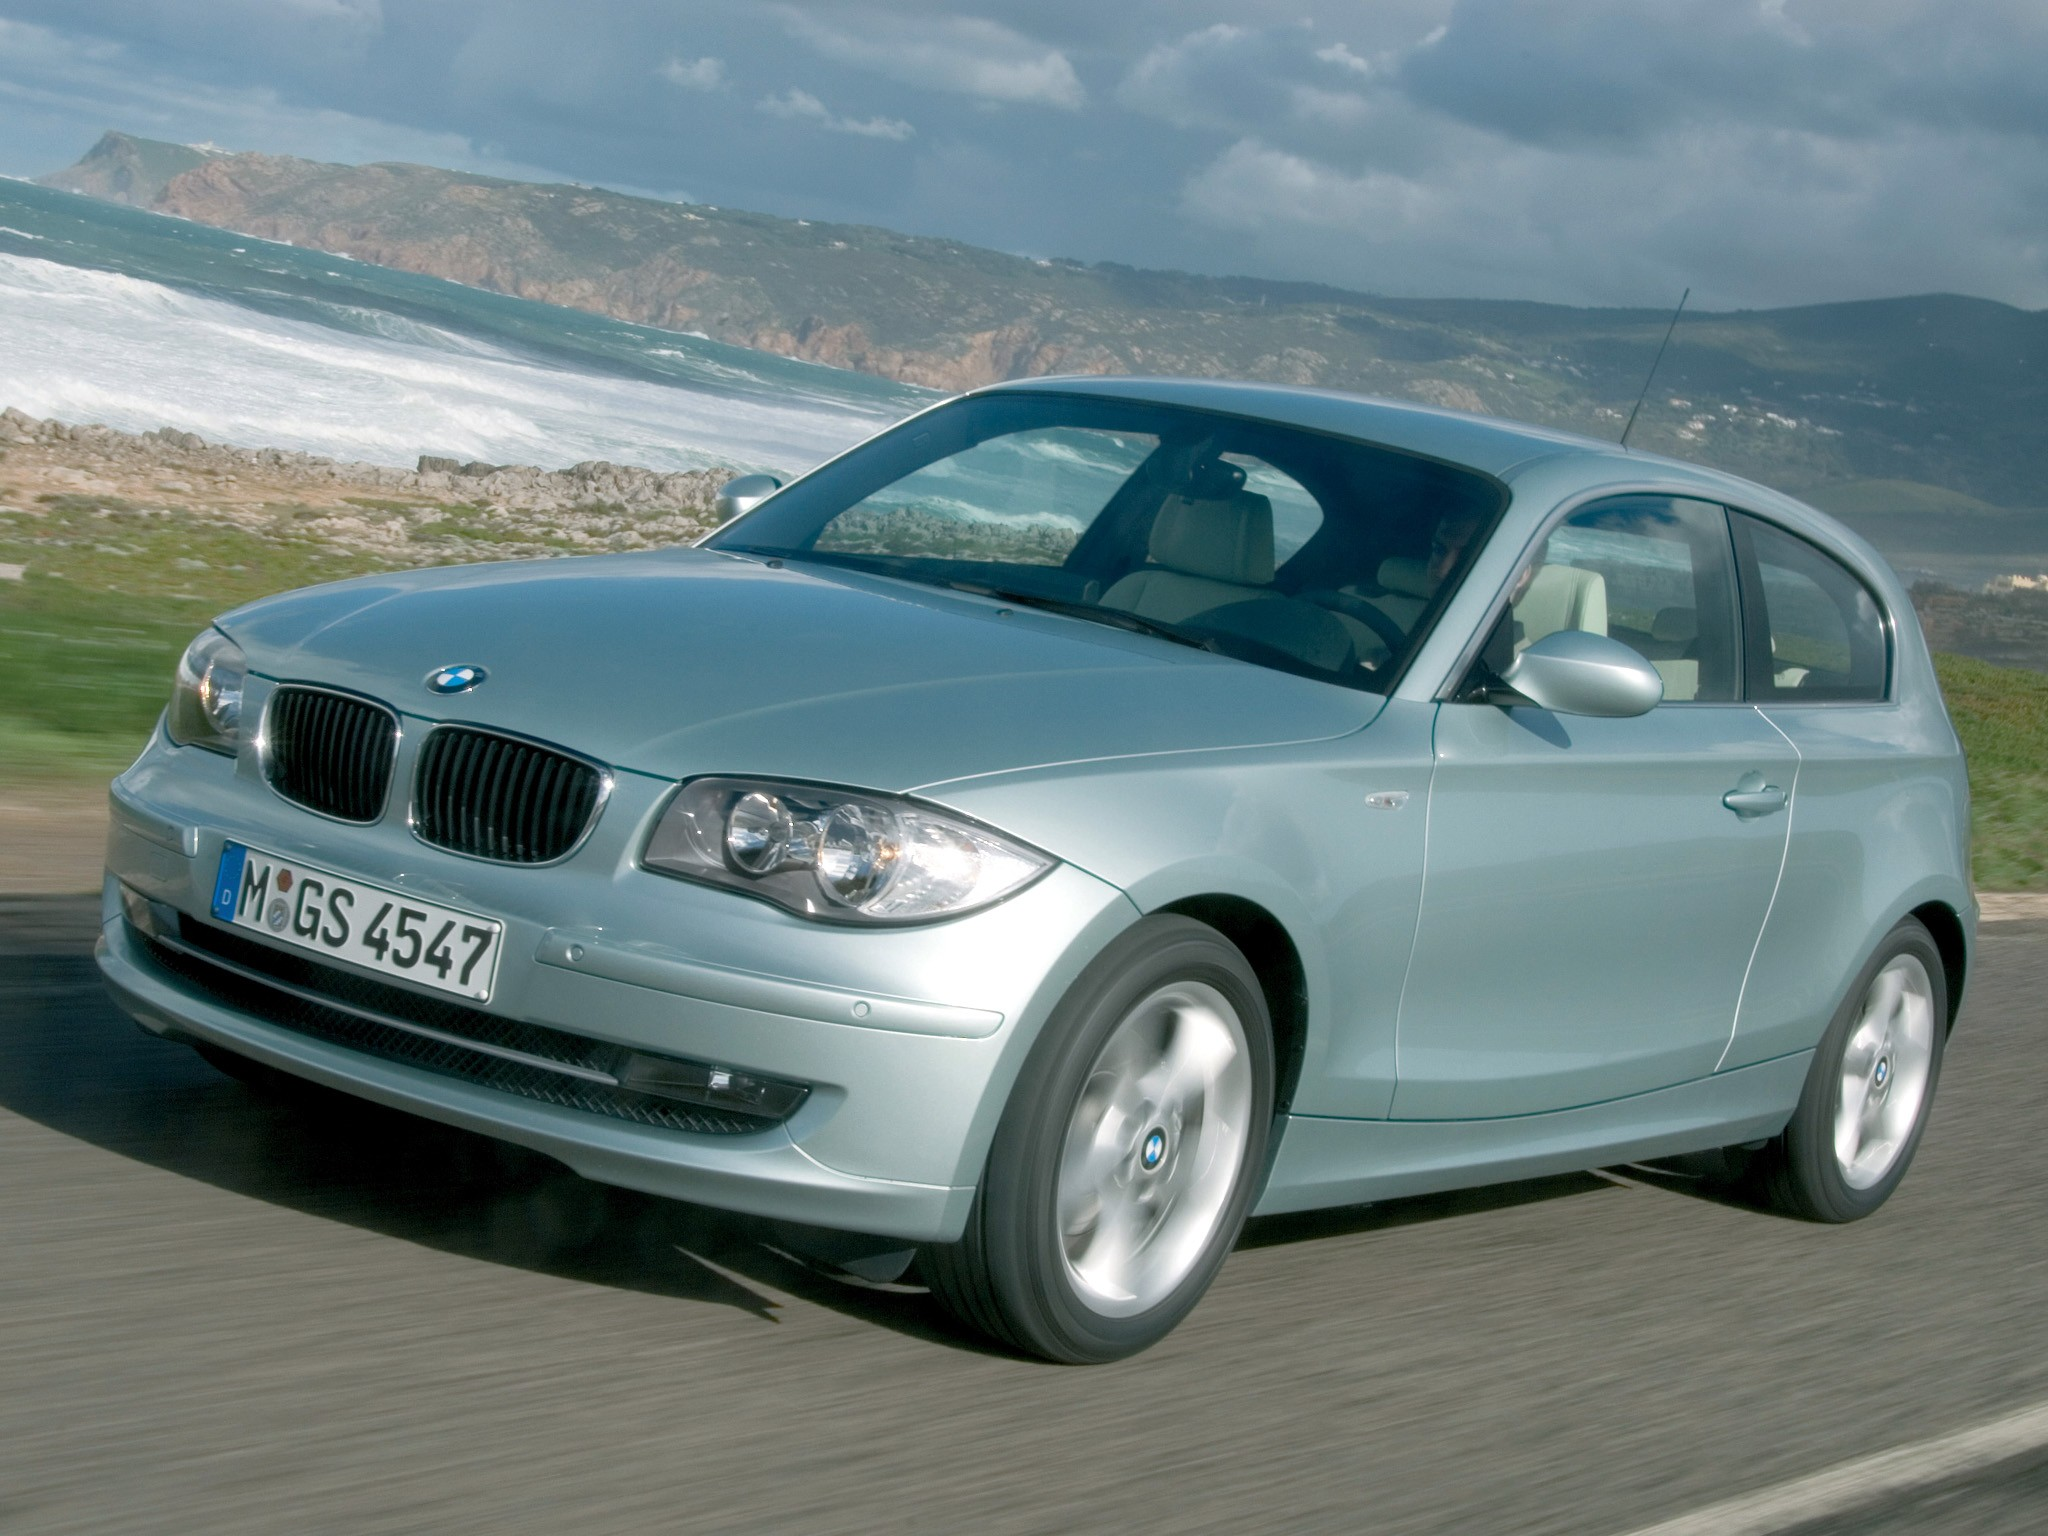 2010 BMW 1 Series 3 door photo - 2